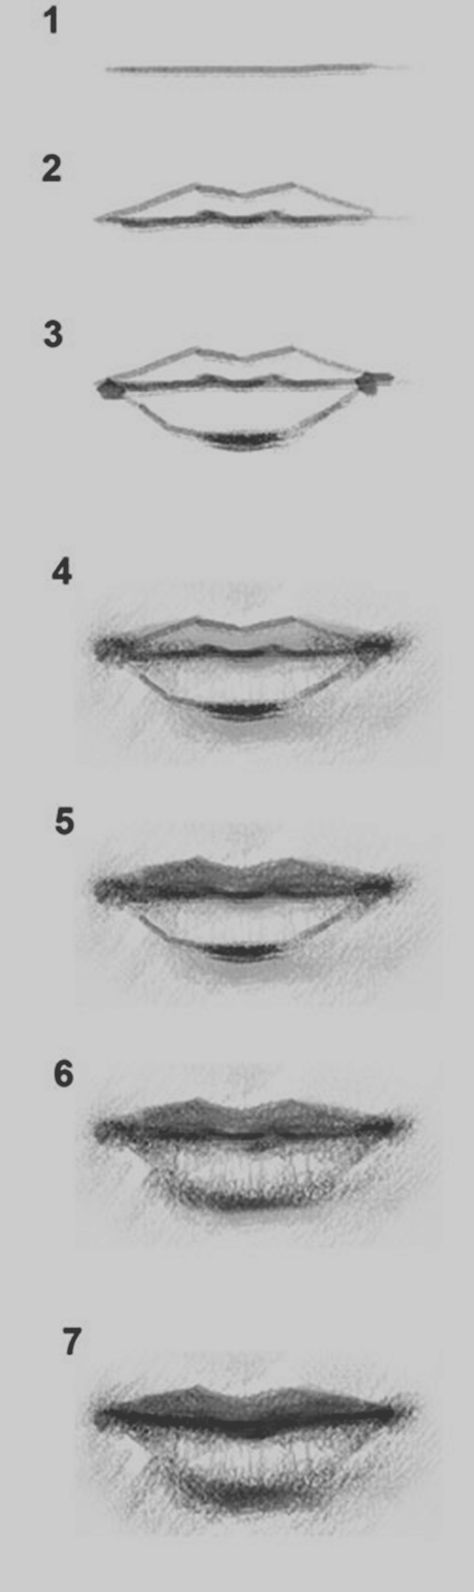 40 Easy Step By Step Art Drawings To Practice | Pinterest | Zeichnen ...